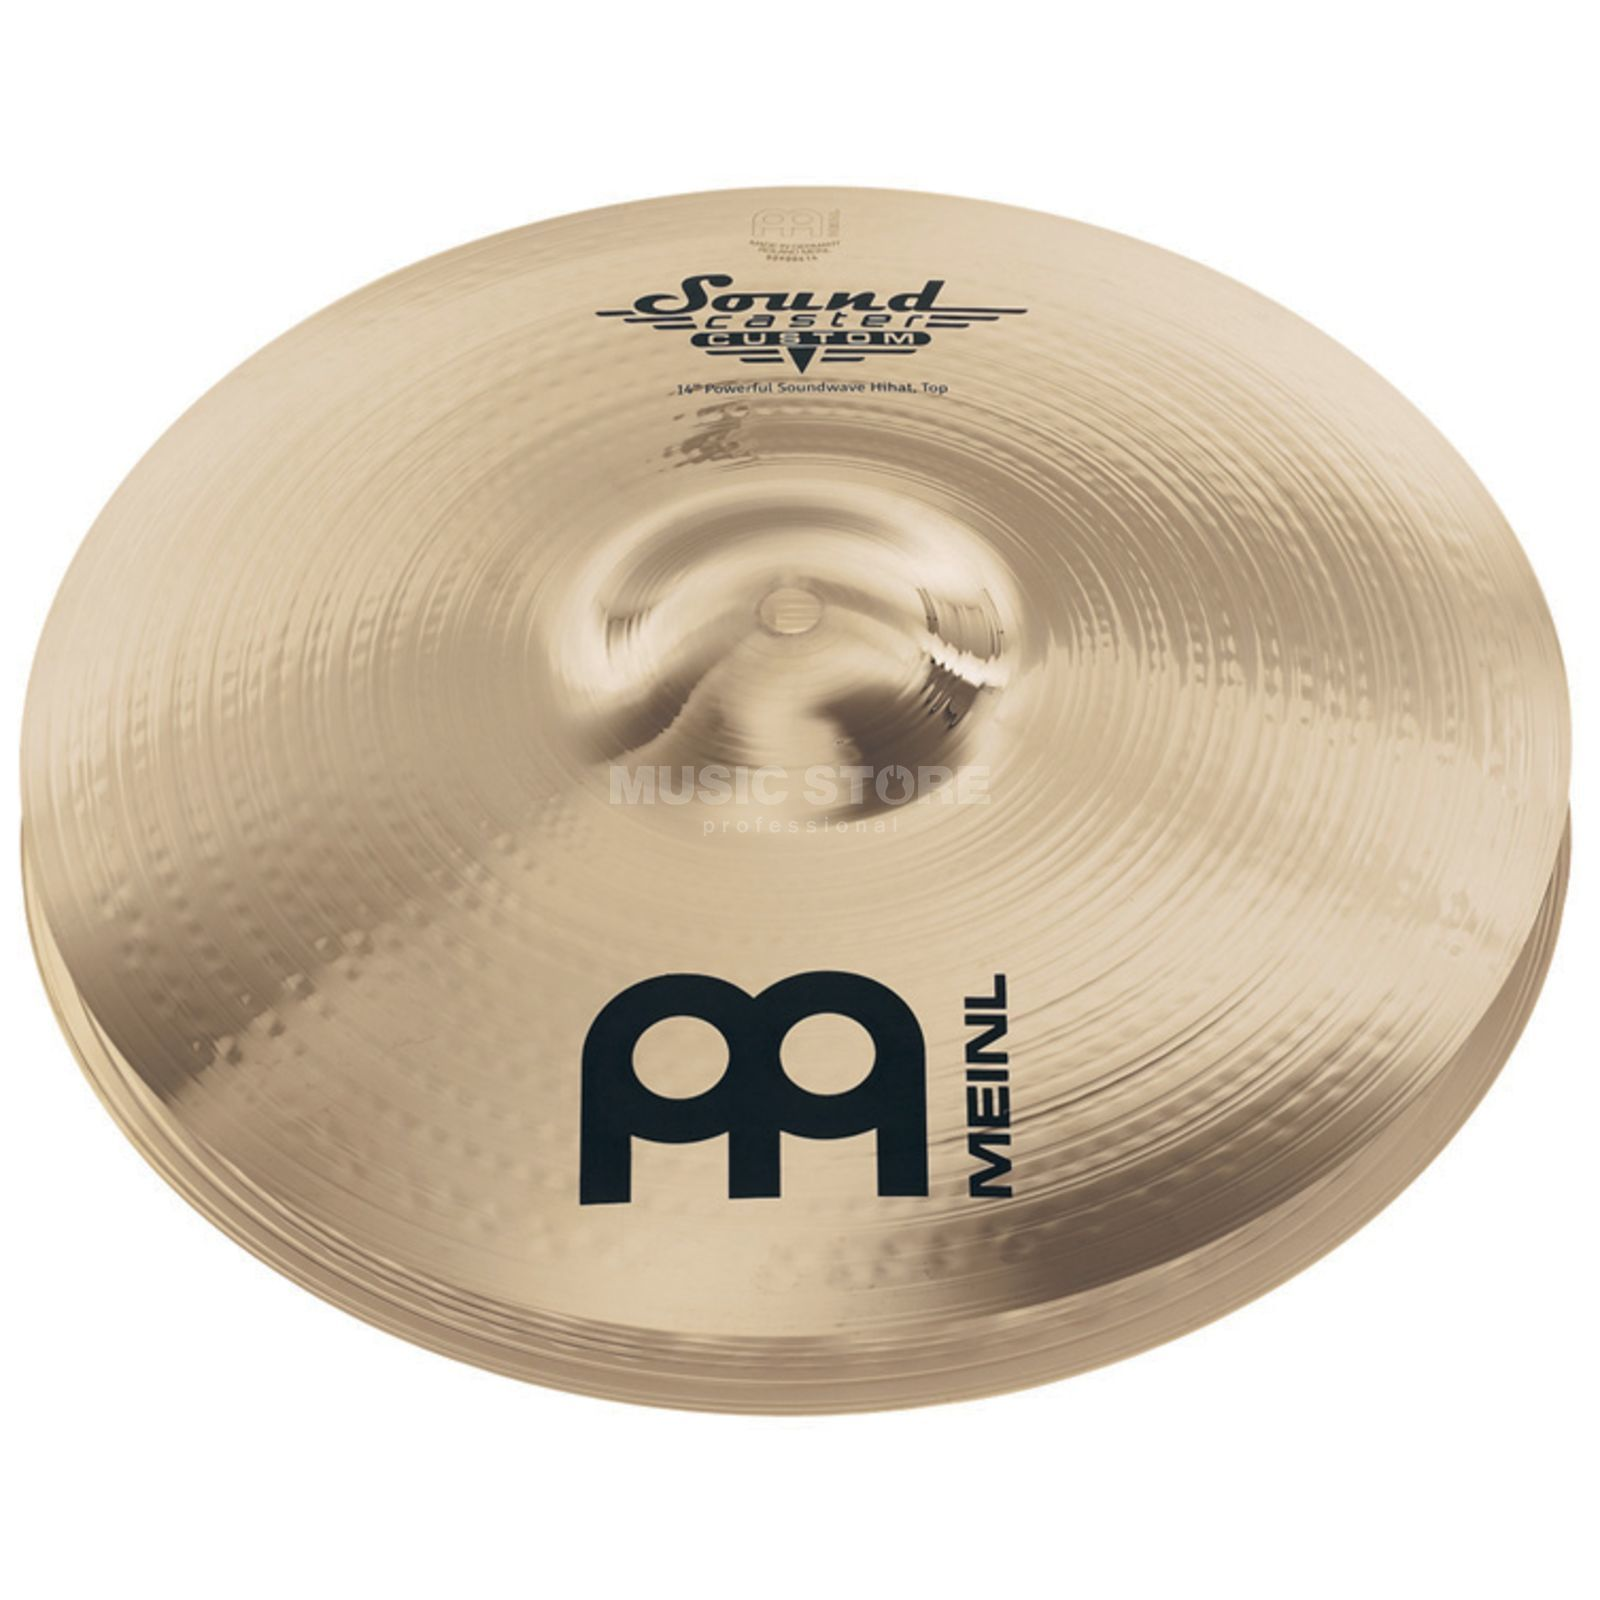 "Meinl SoundCaster Custom HiHat 14"" SC14PSW-B, Powerful, Soundwave Imagem do produto"